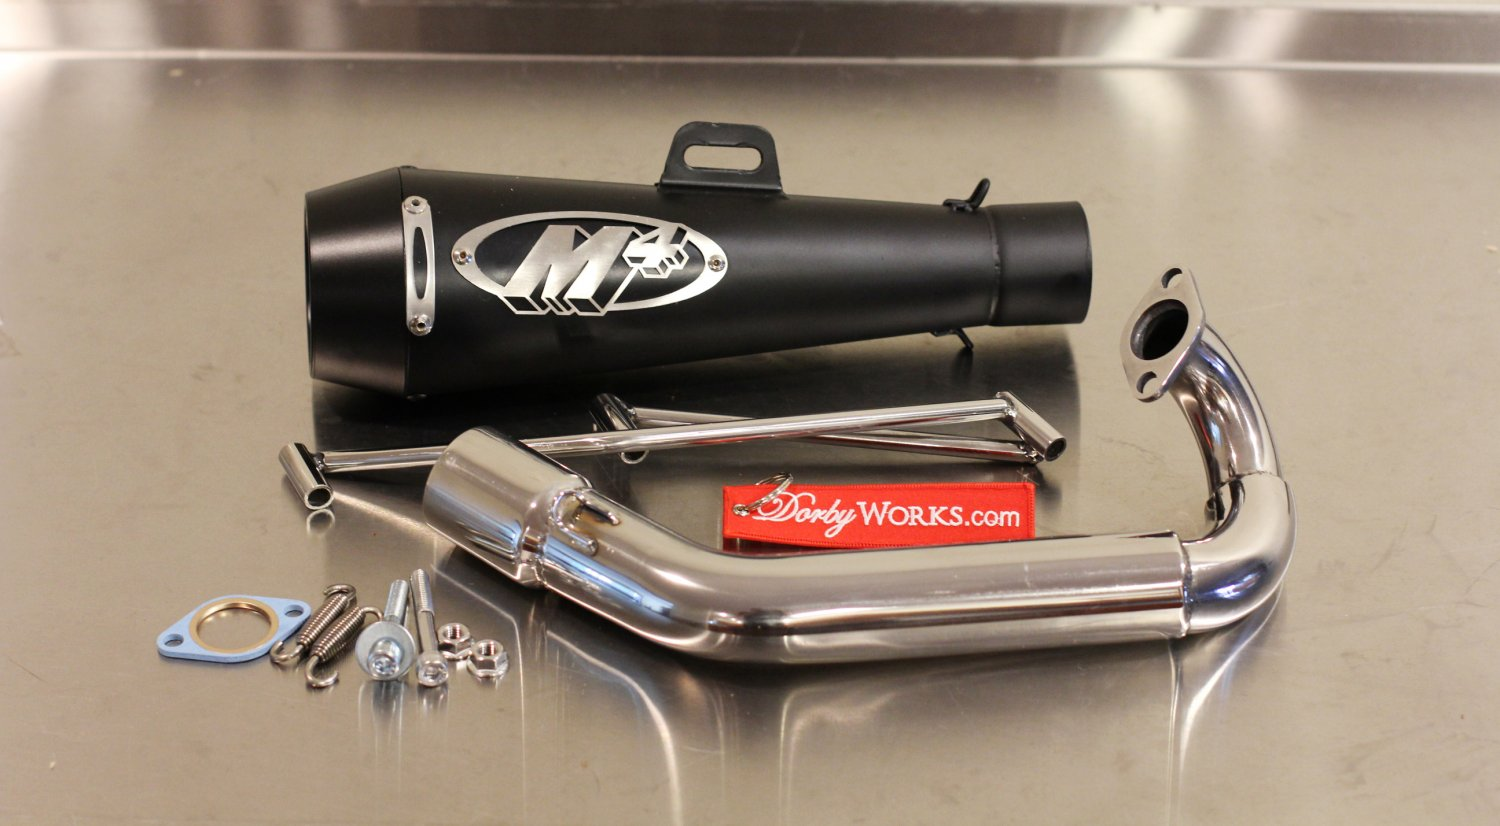 Dorbyworks Honda Ruckus Overhead GY6 Black M4 COMPLETE exhaust system